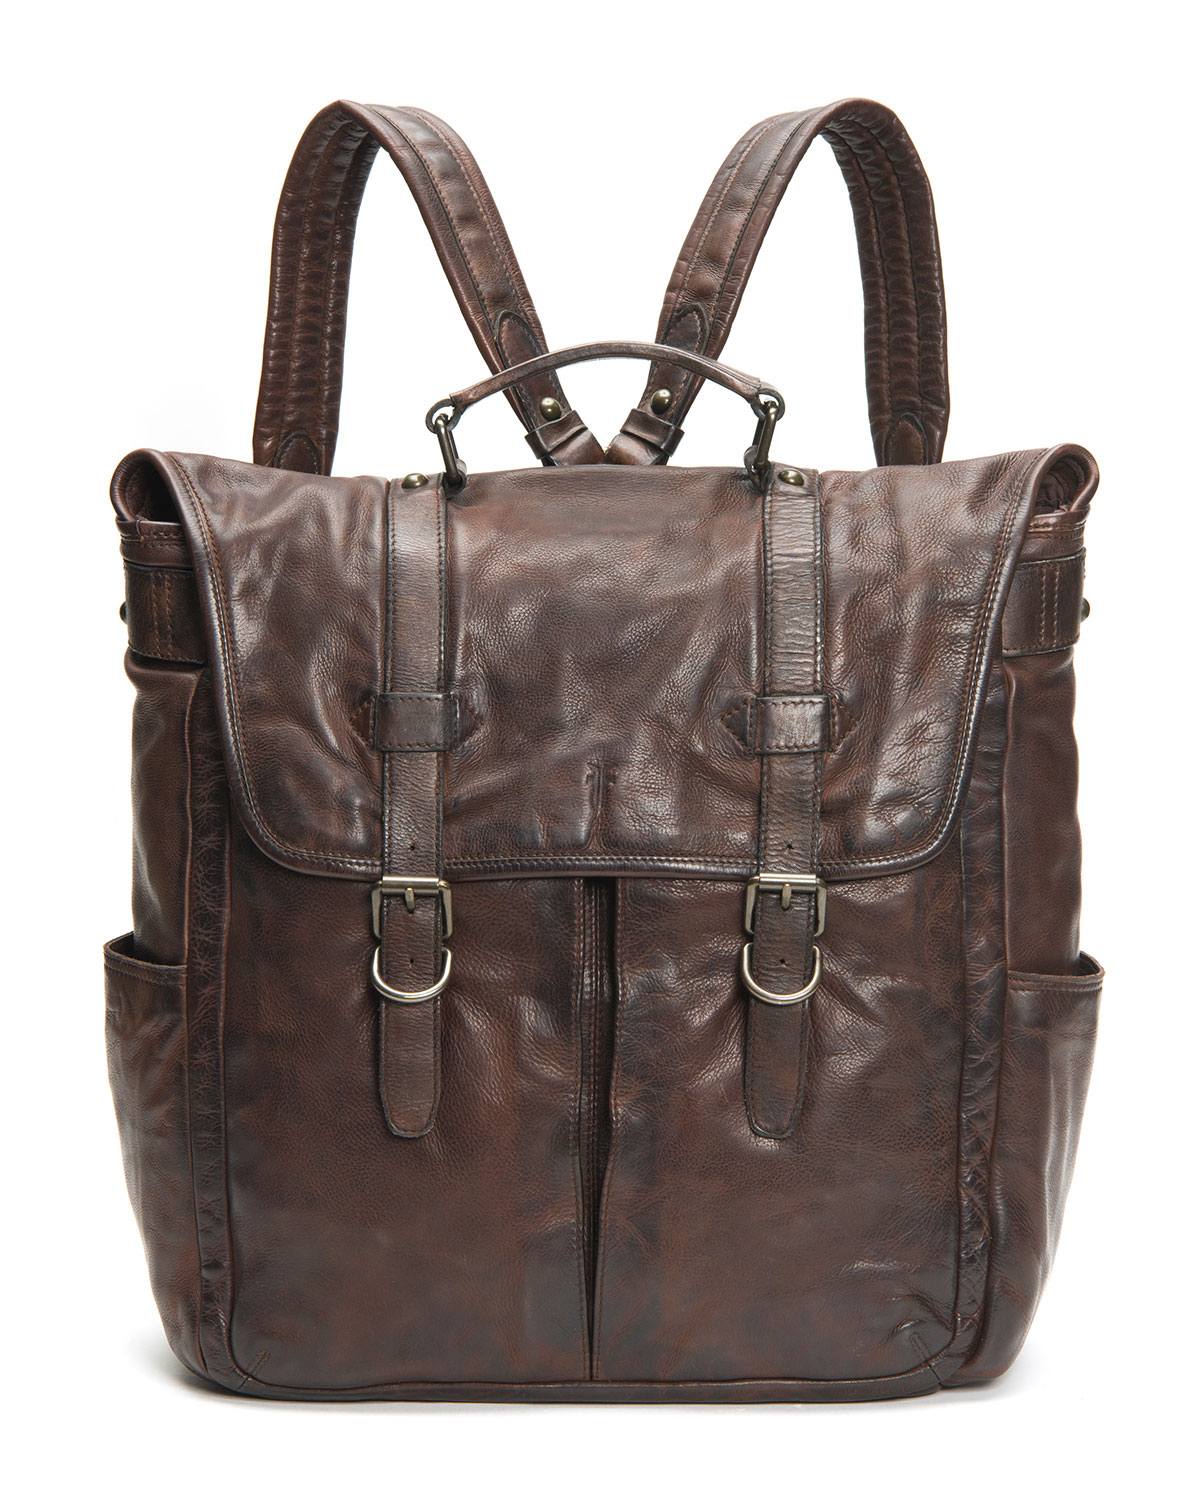 Frye Backpacks MEN'S MURRAY ANTIQUED LEATHER BUCKLE BACKPACK